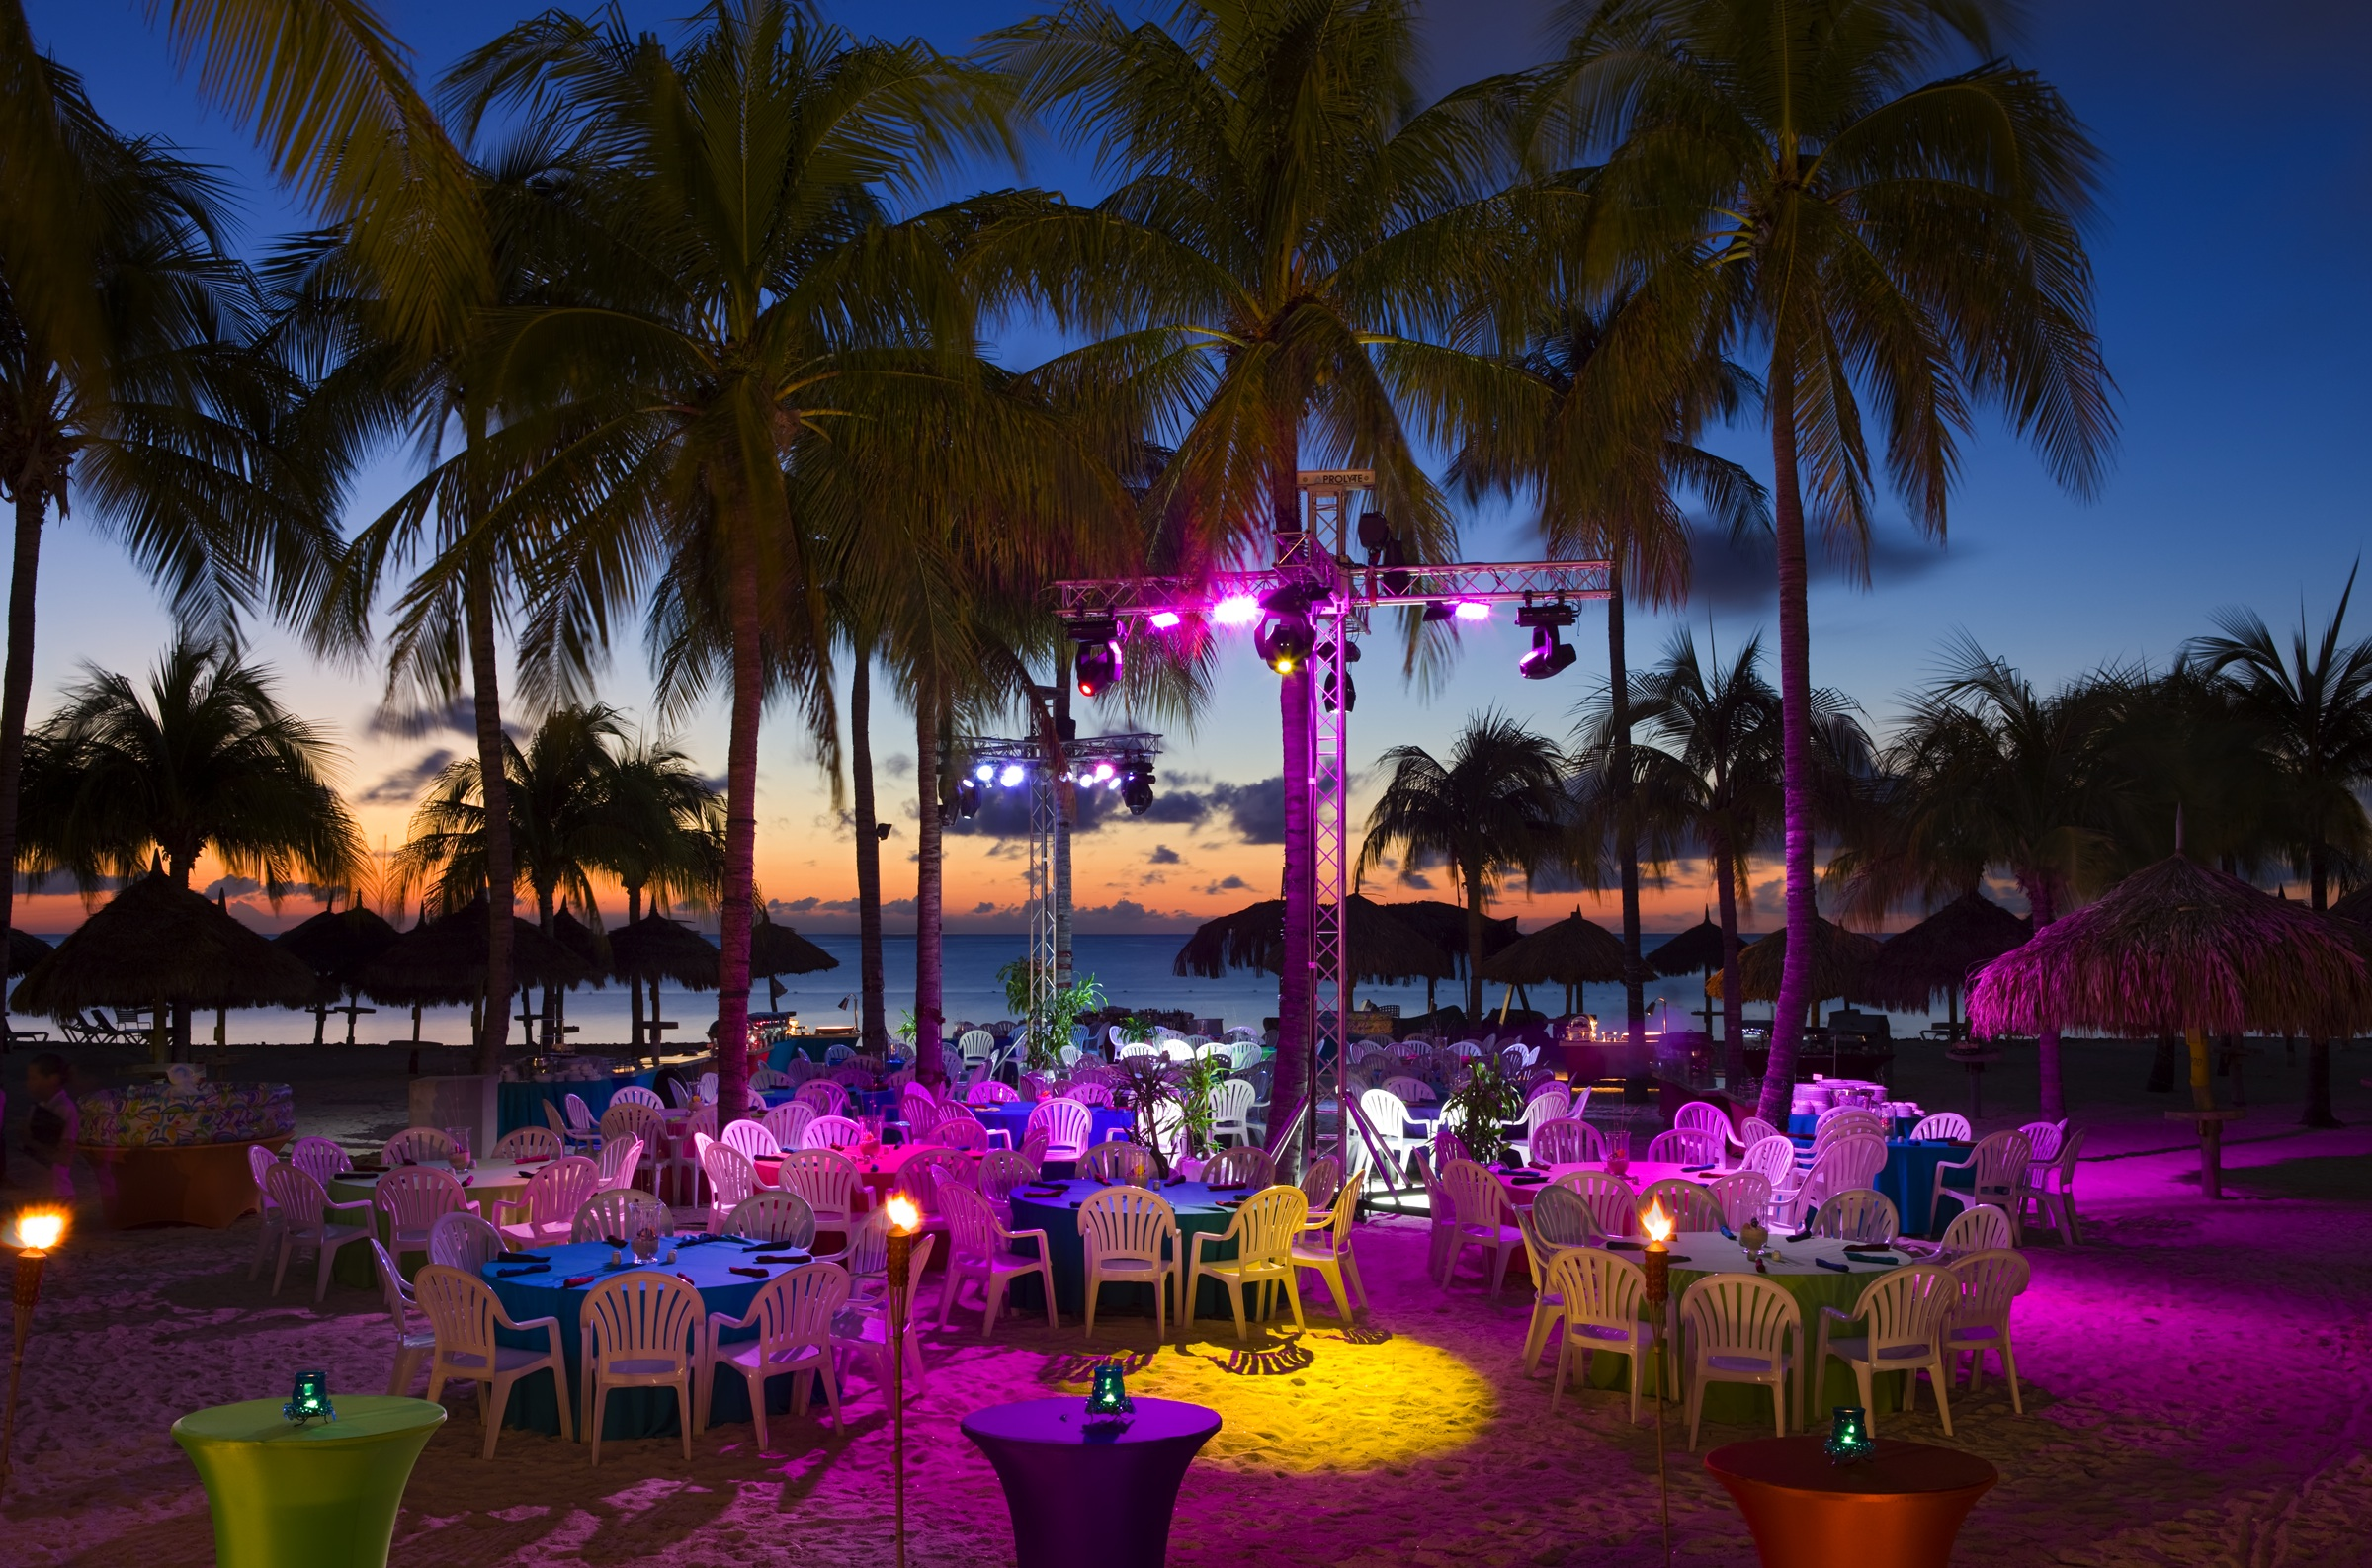 Caribbean Theme Party Ideas On Pinterest: On Location: Aruba Marriott